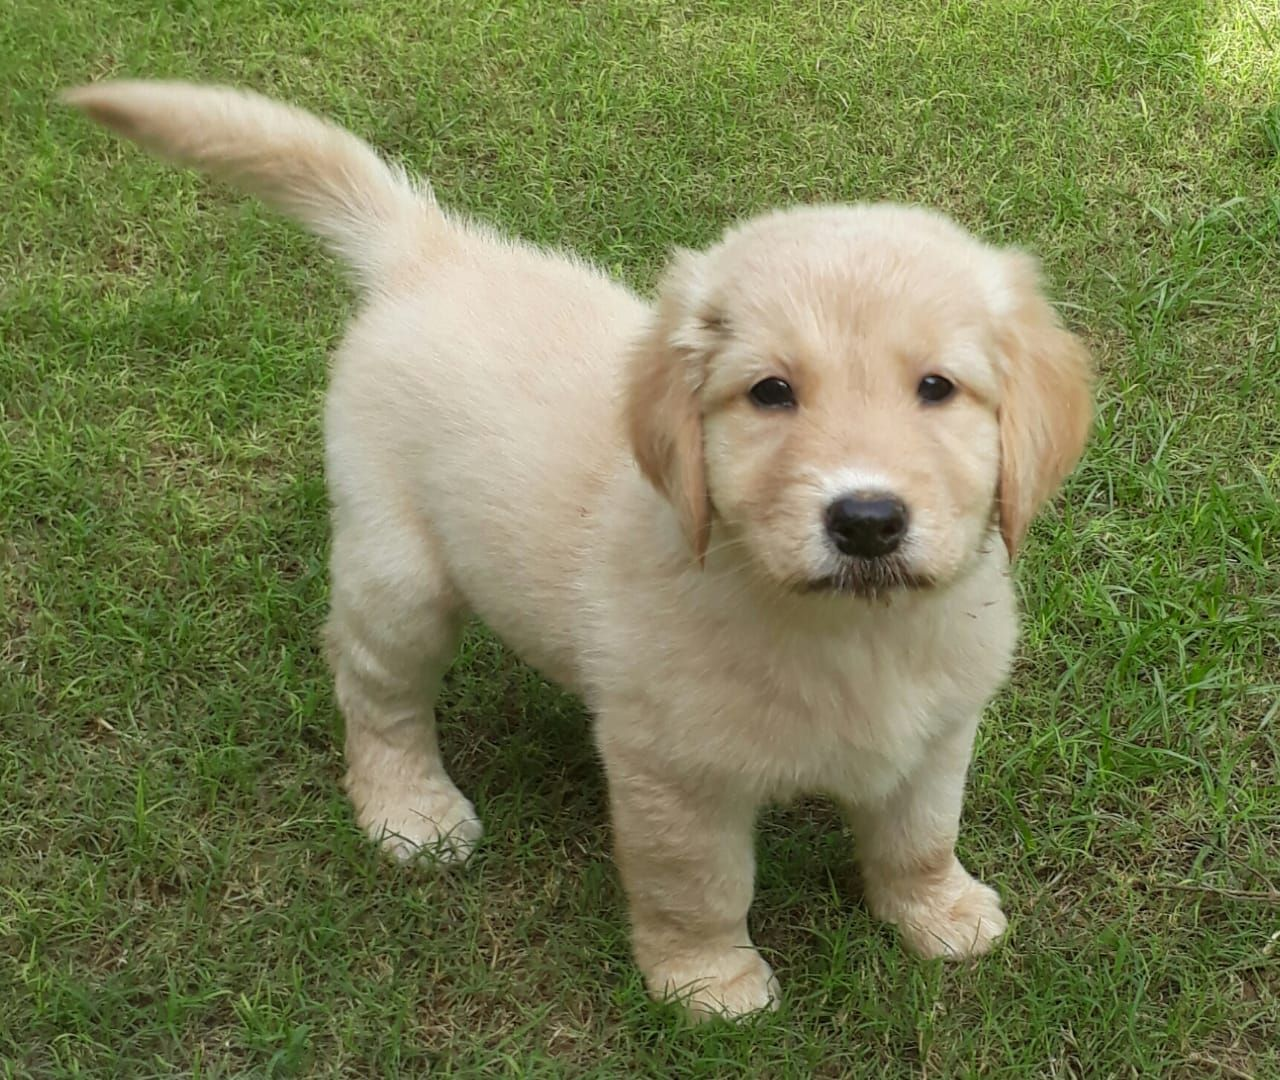 Golden Retriever Puppy Cute Dogs Puppies Cute Animals